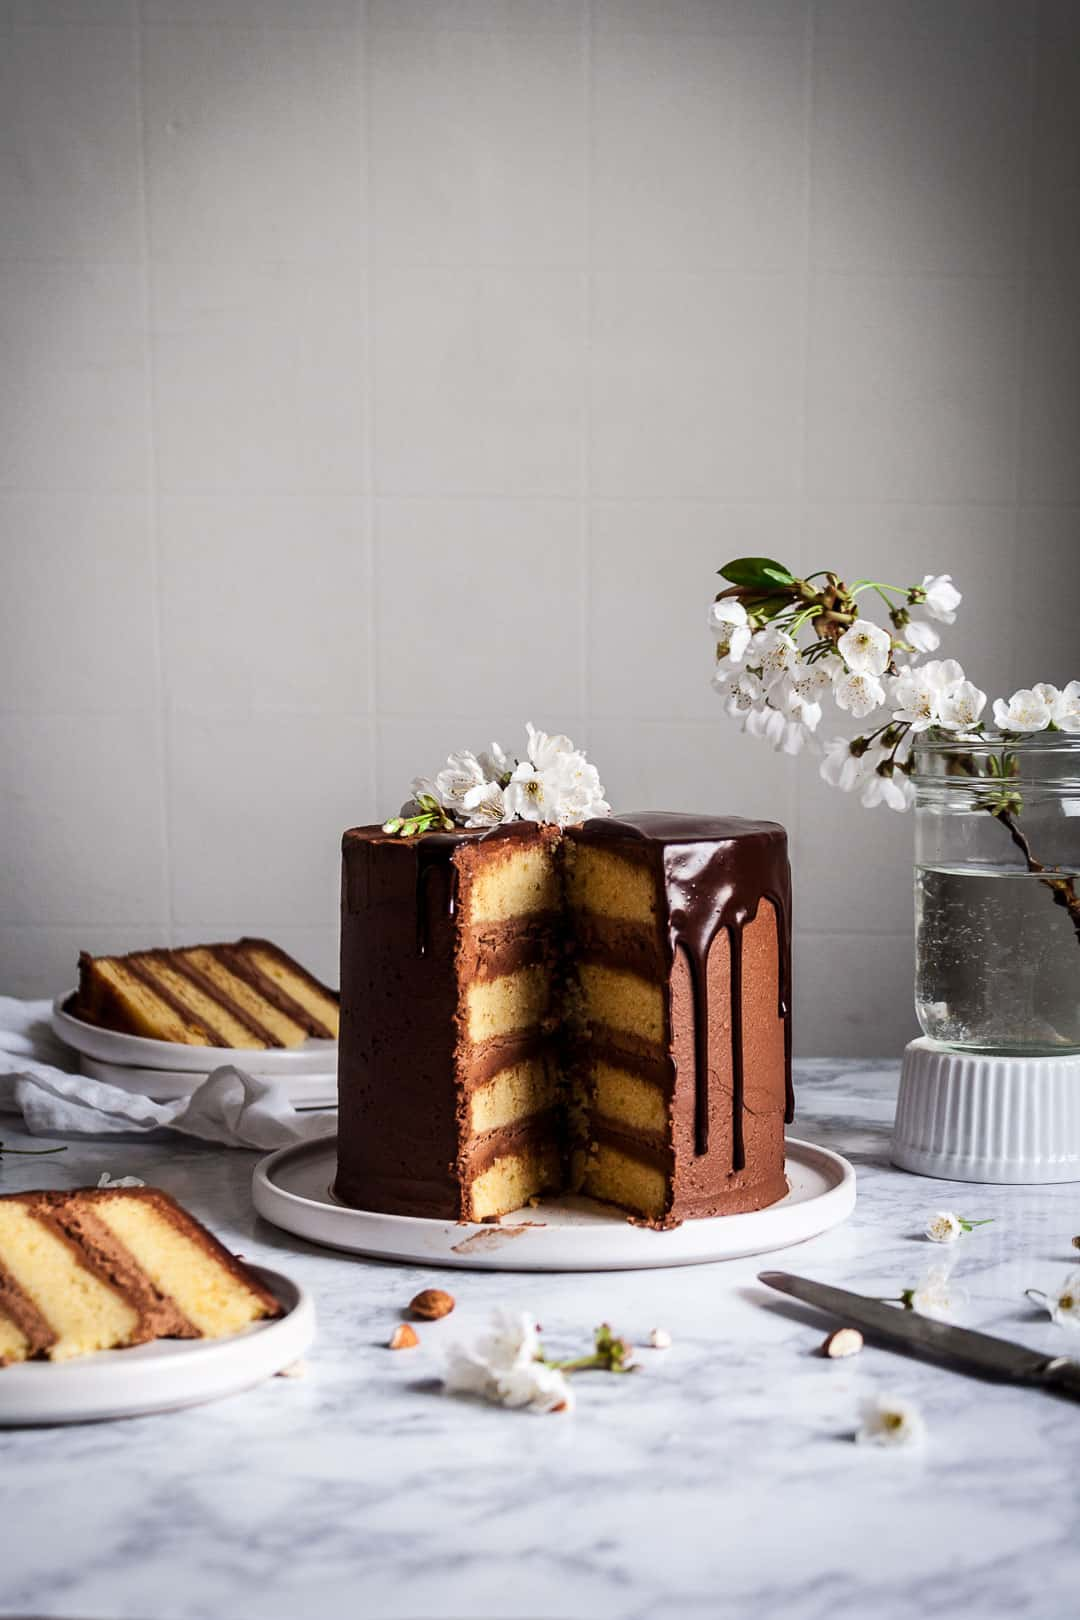 Marzipan and dark chocolate layer cake on white platter and marble background with cherry blossom garnish on the cake